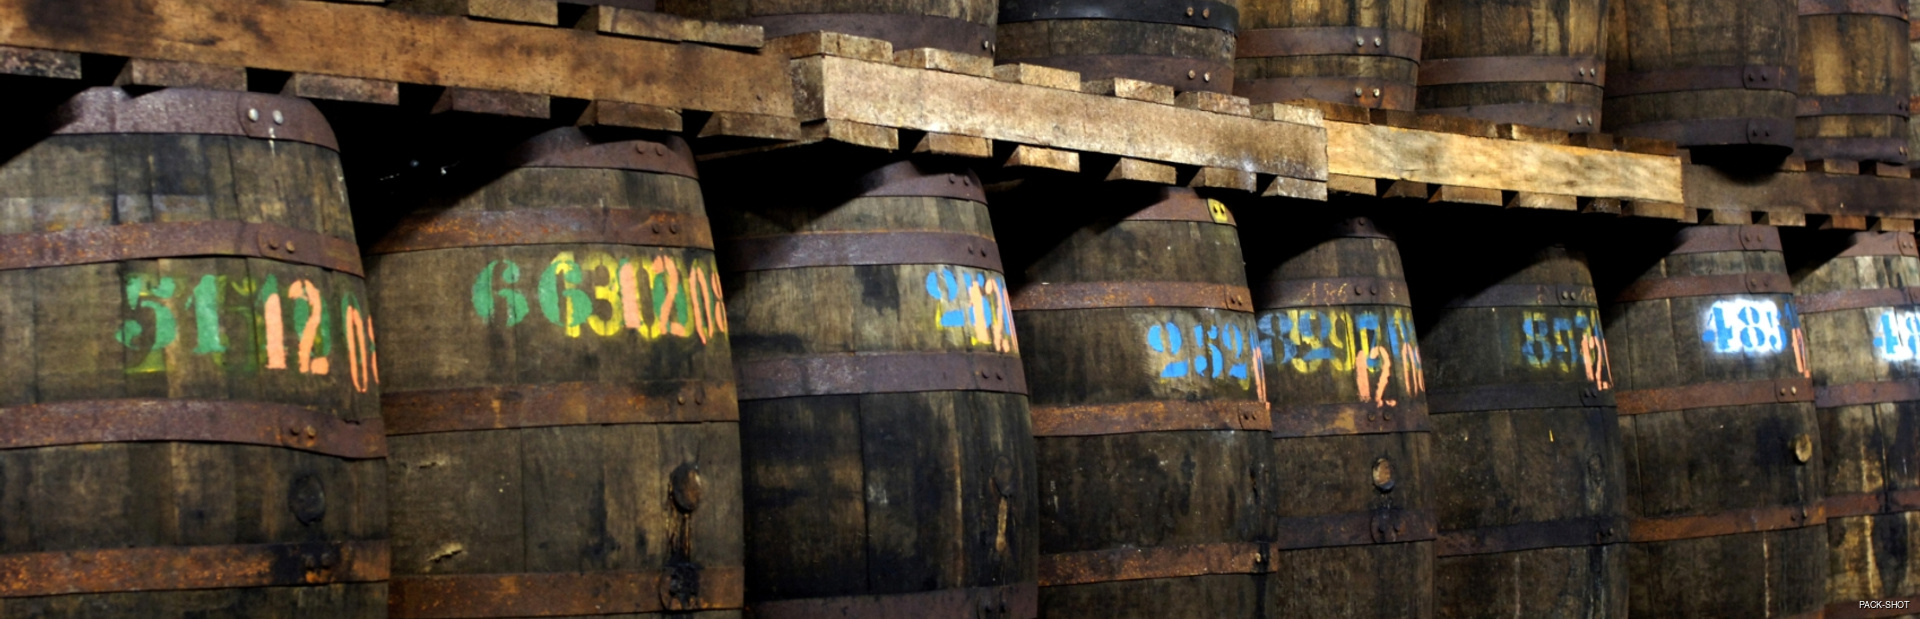 Many signed barrels wit the rum